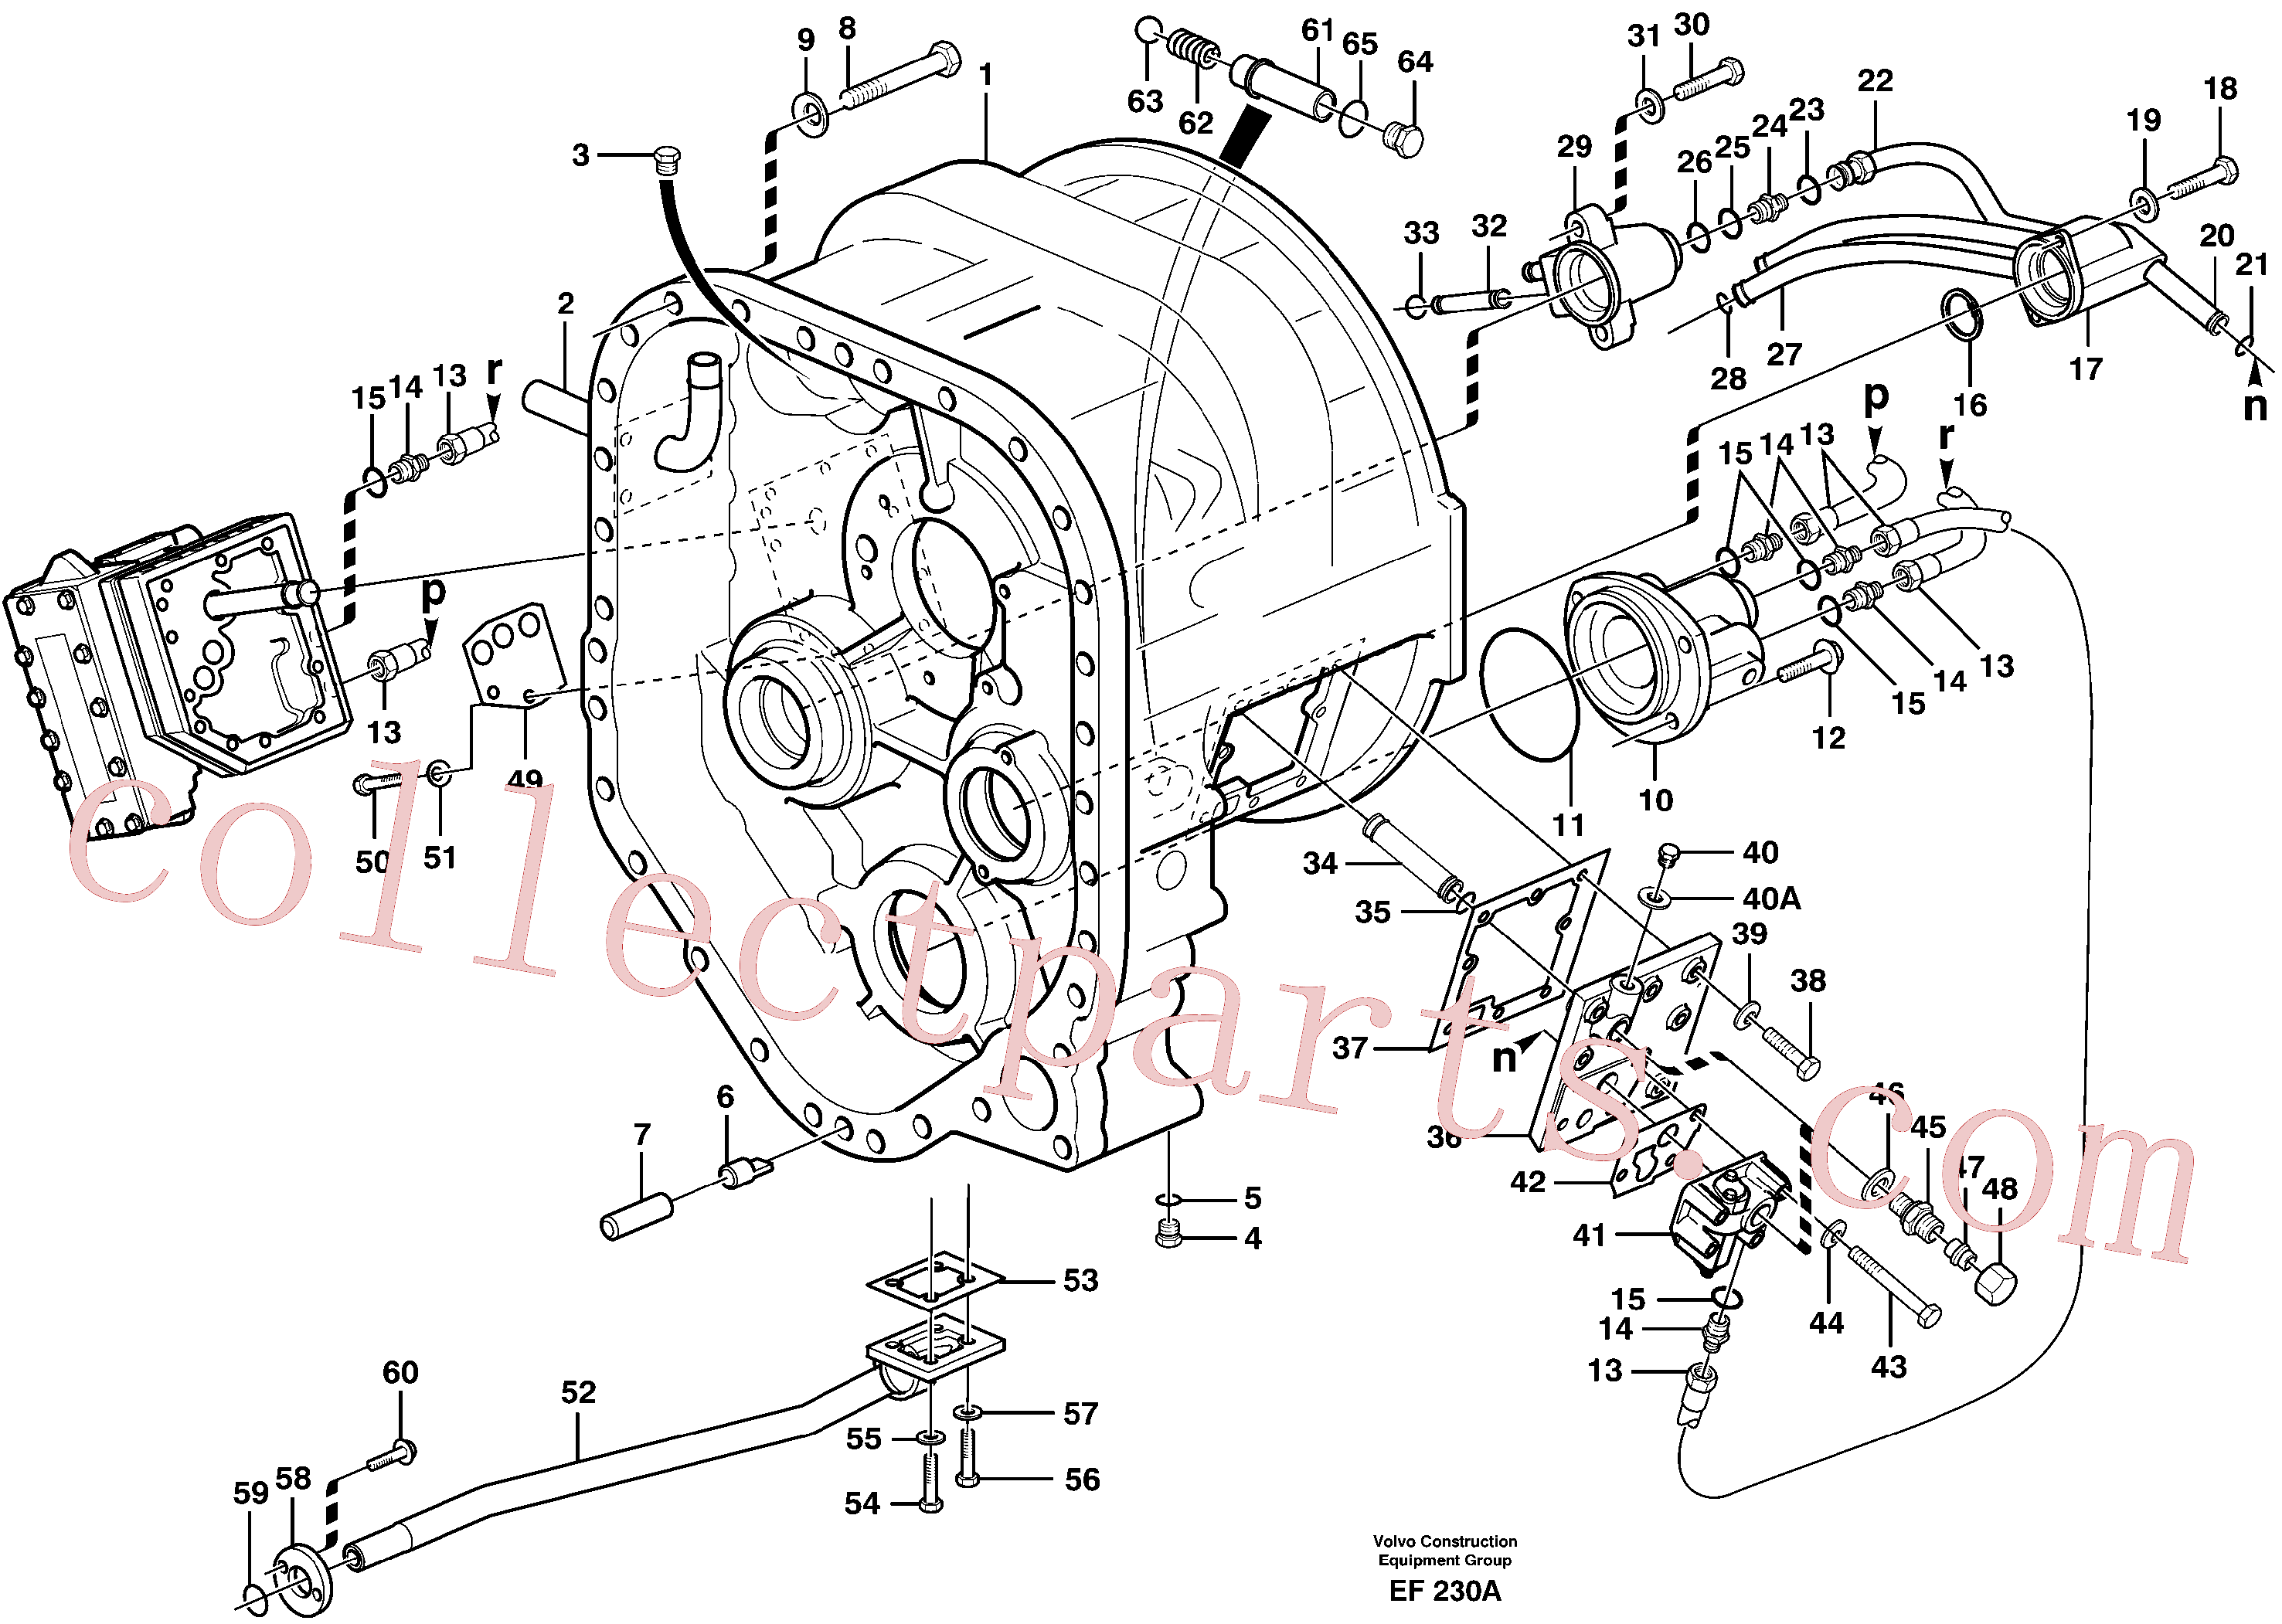 VOE11034156 for Volvo Converter housing with fitting parts(EF230A assembly)